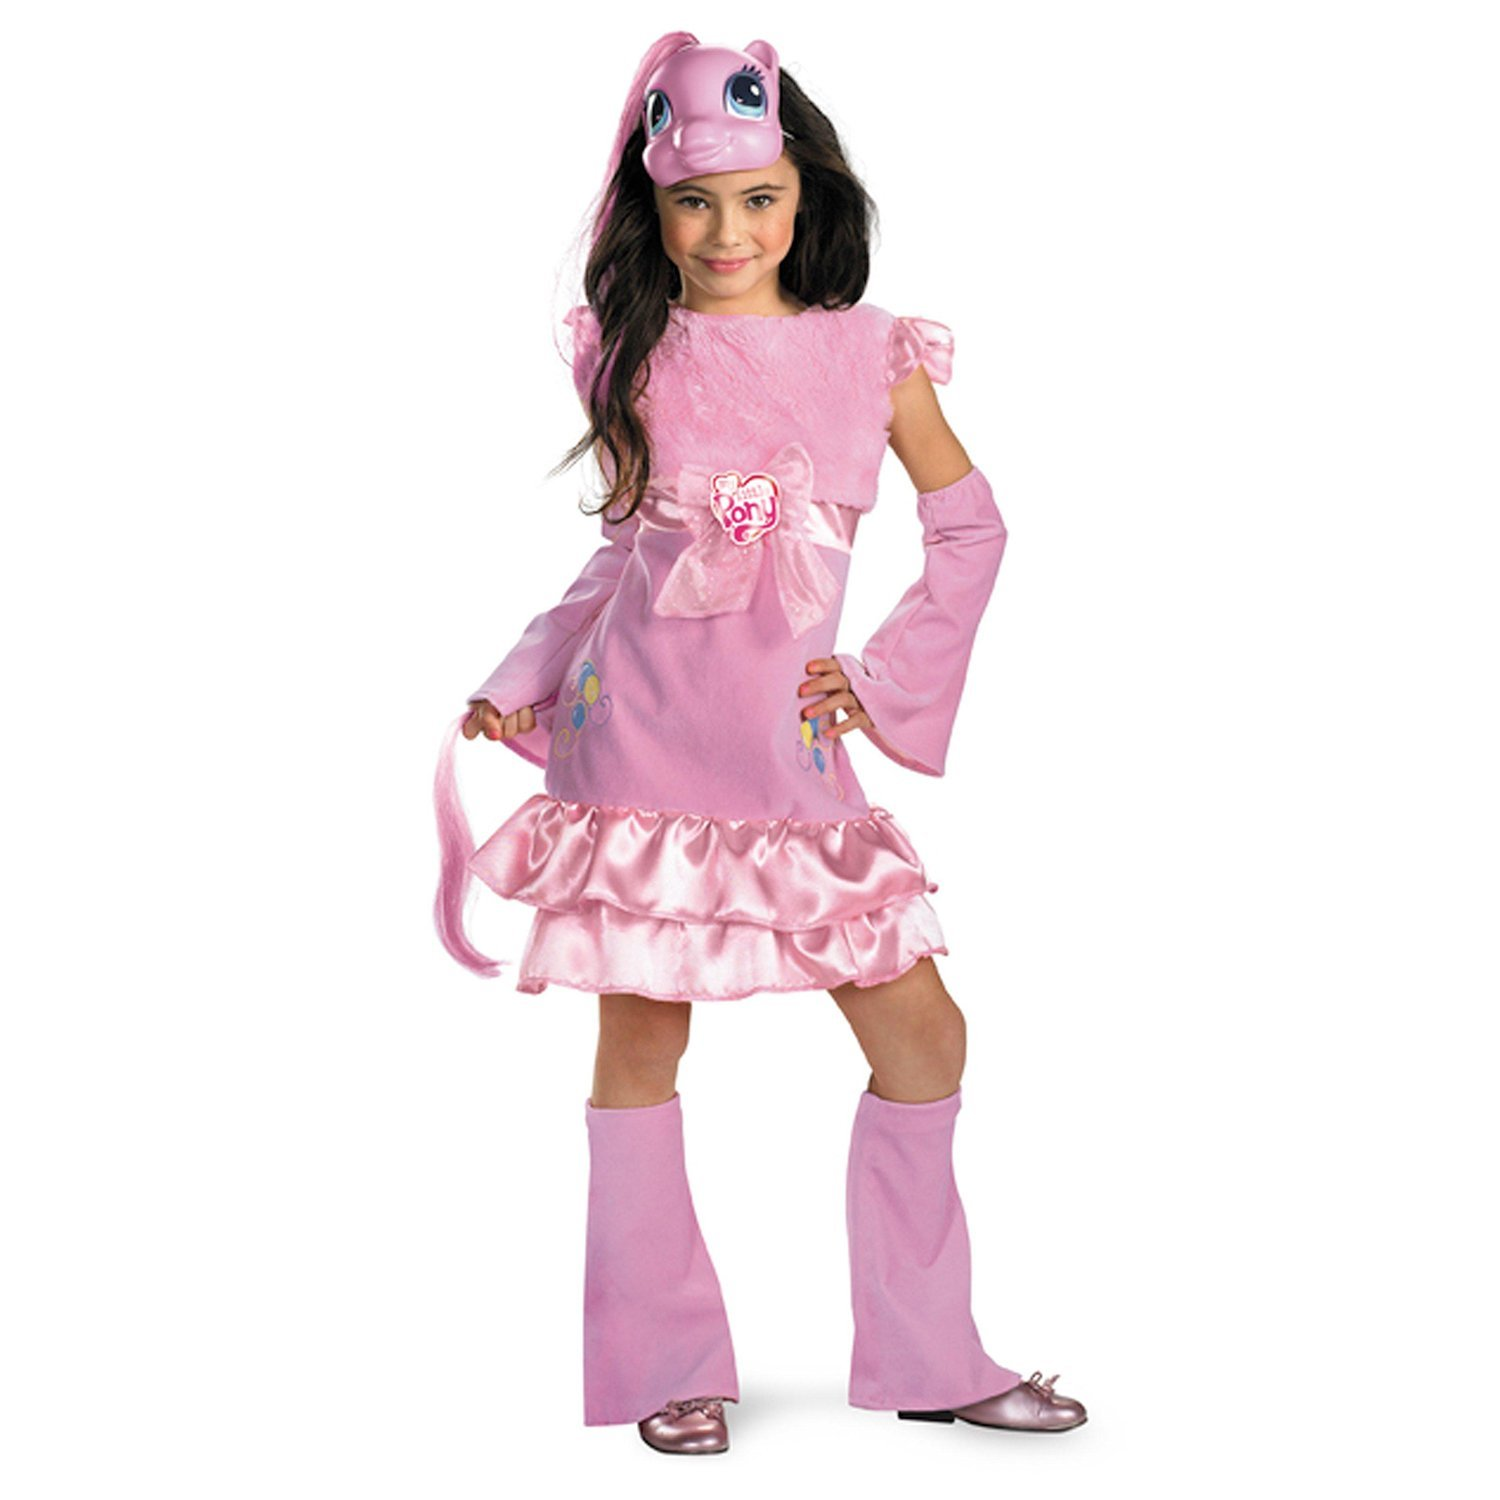 cheap pony costume for kids, find pony costume for kids deals on